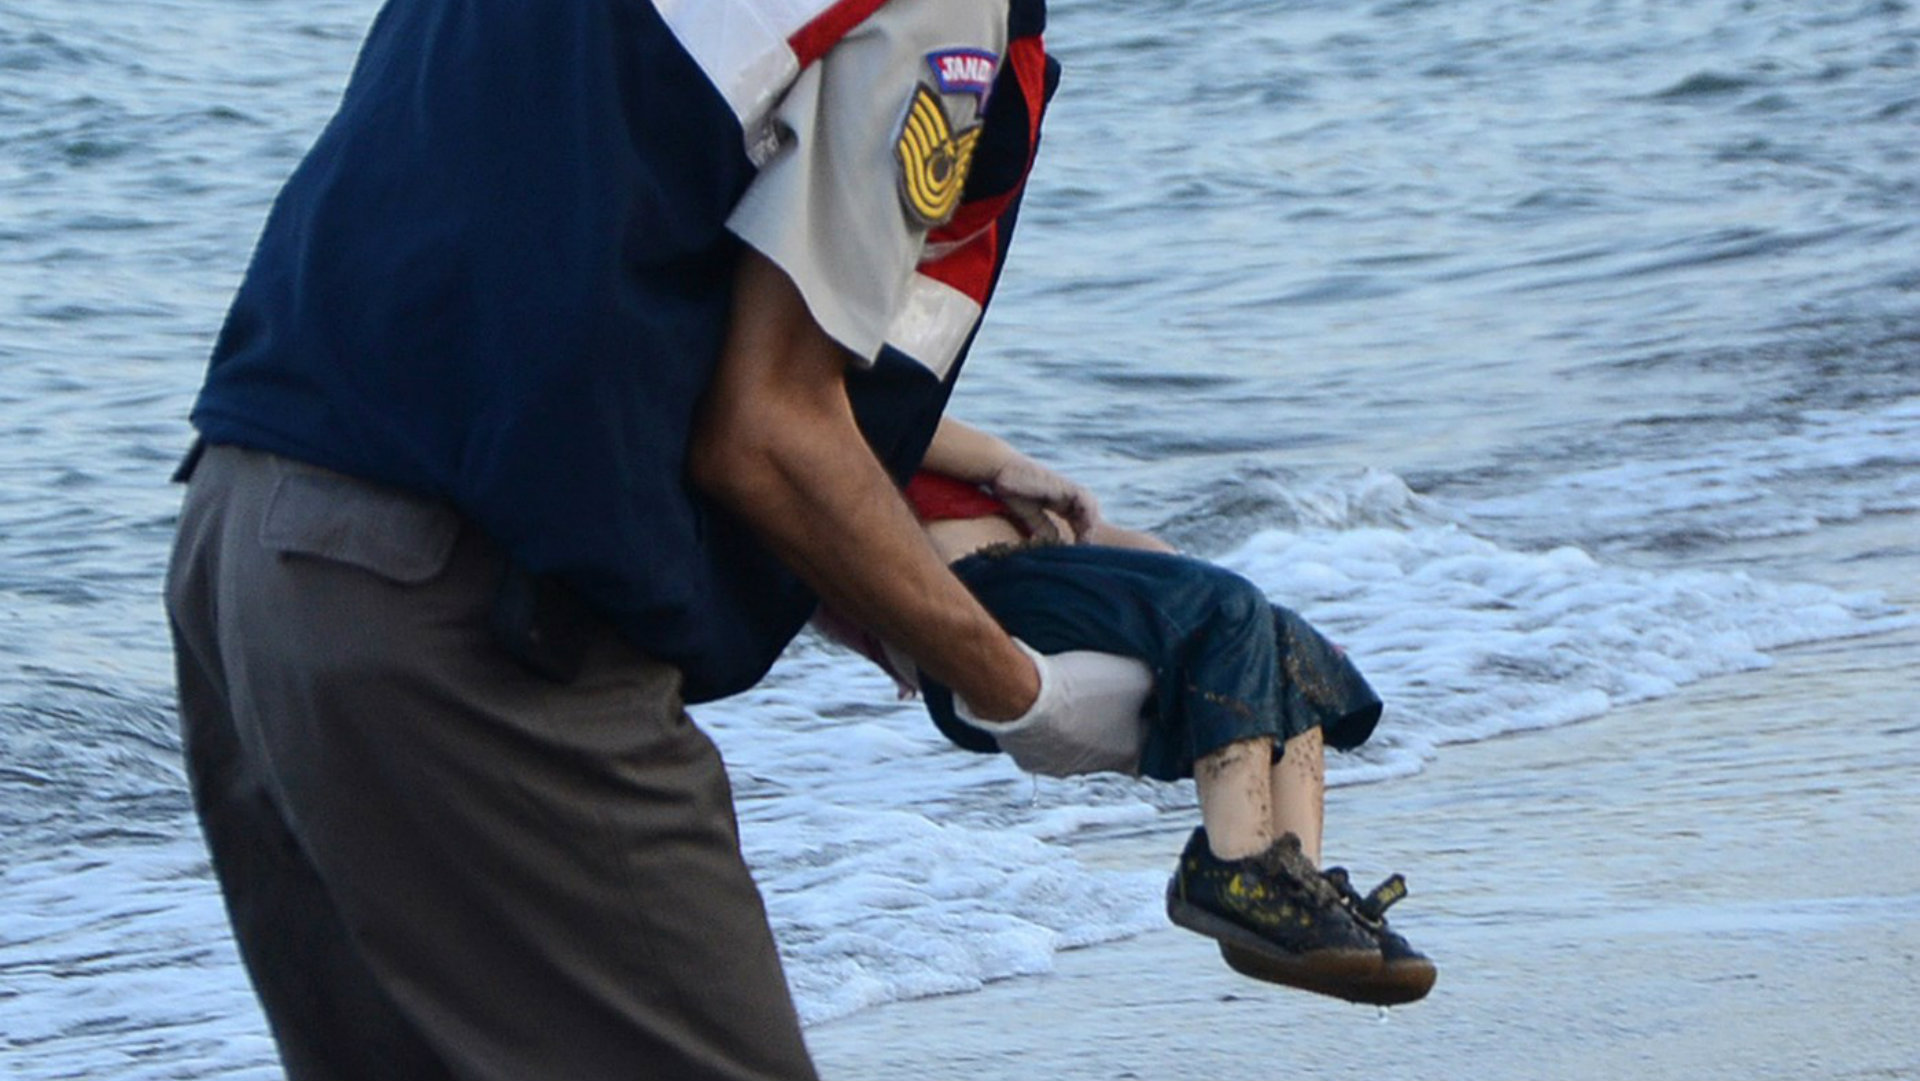 Many carrying the body of Alan Kurdi